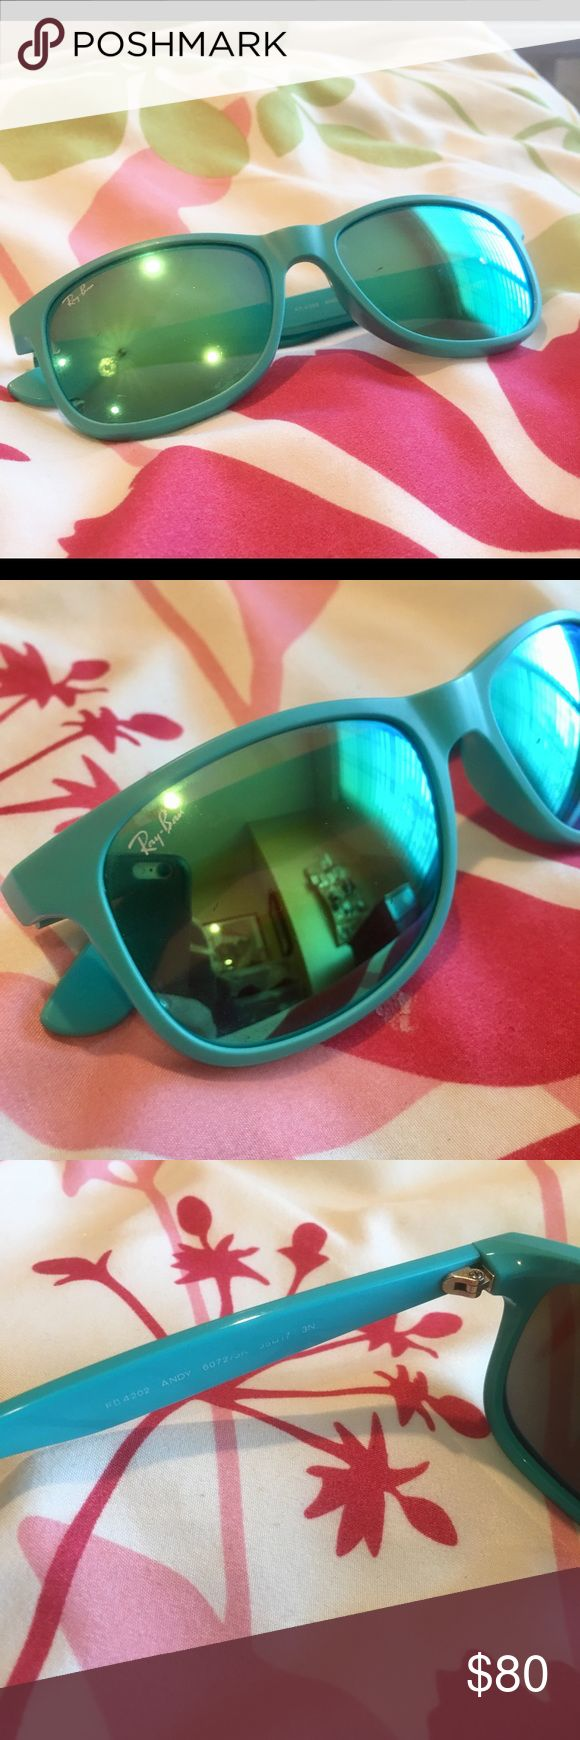 Authentic Ray Ban teal mirrored glasses Authentic Ray Ban teal mirrored glasses. Worn several tones but in great condition. No scratches on lenses. Comes in case but not Ray Ban case. Ray-Ban Accessories Sunglasses